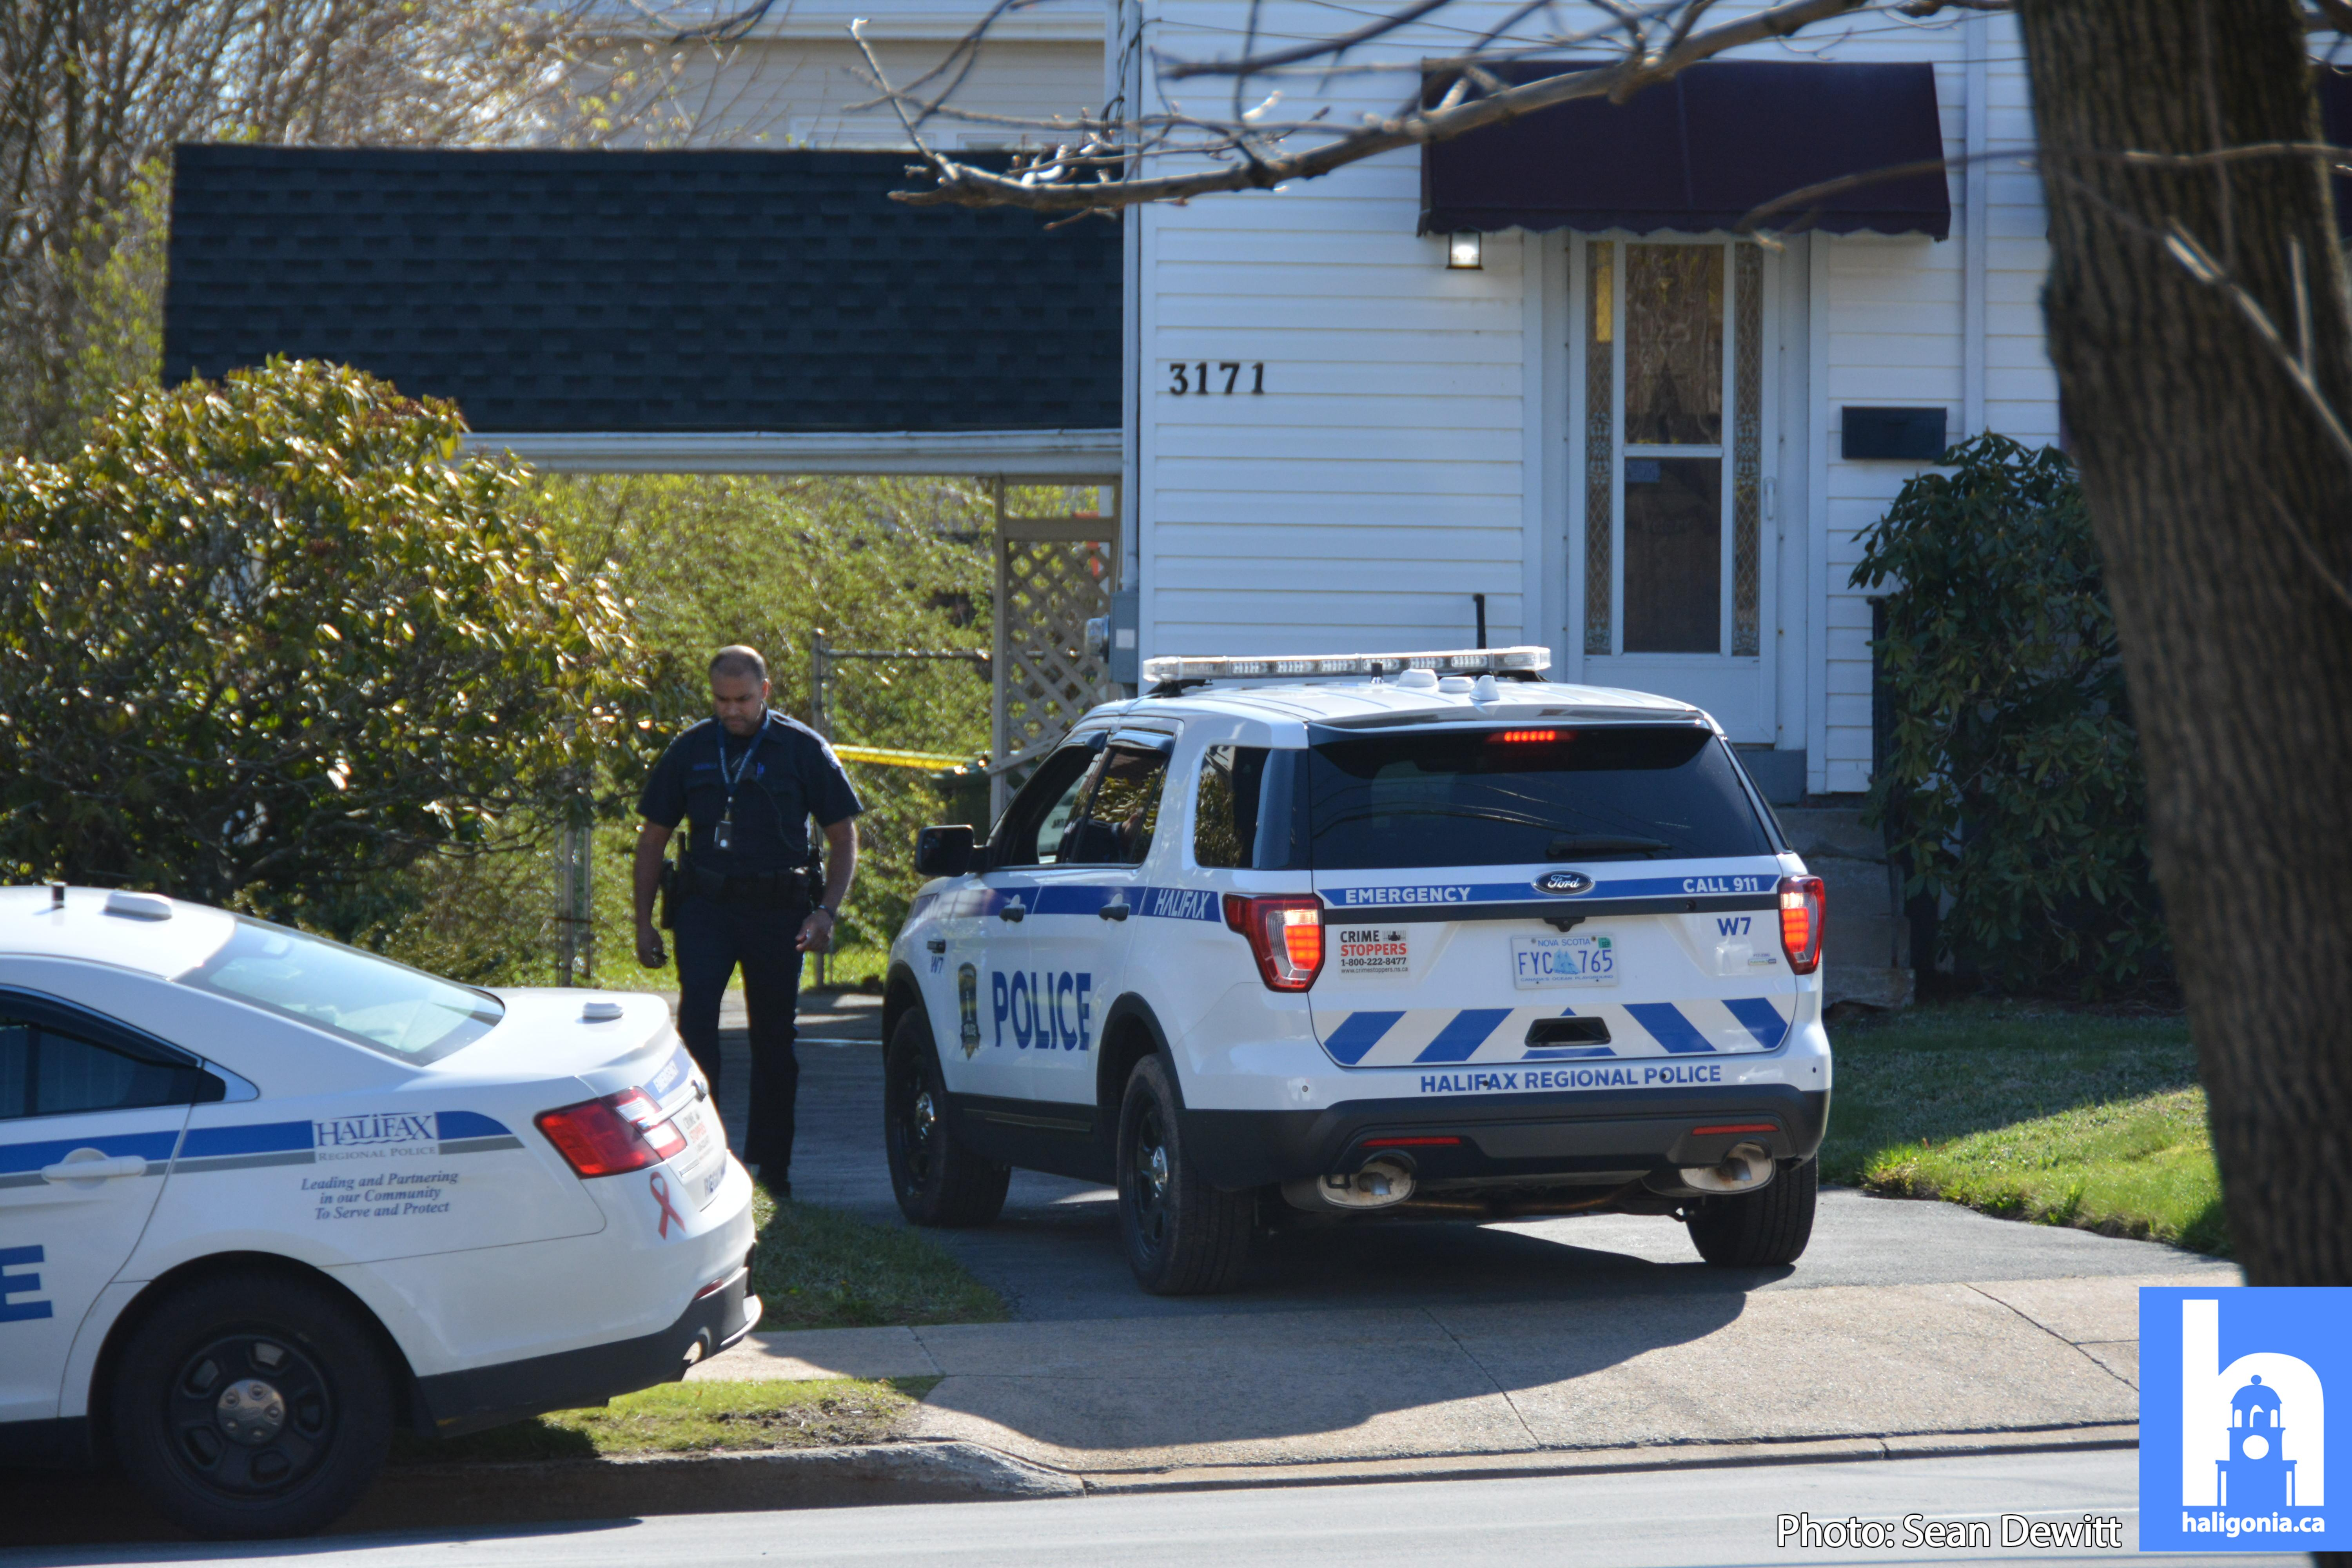 Attempted murder charges Laid in Stabbing – Halifax